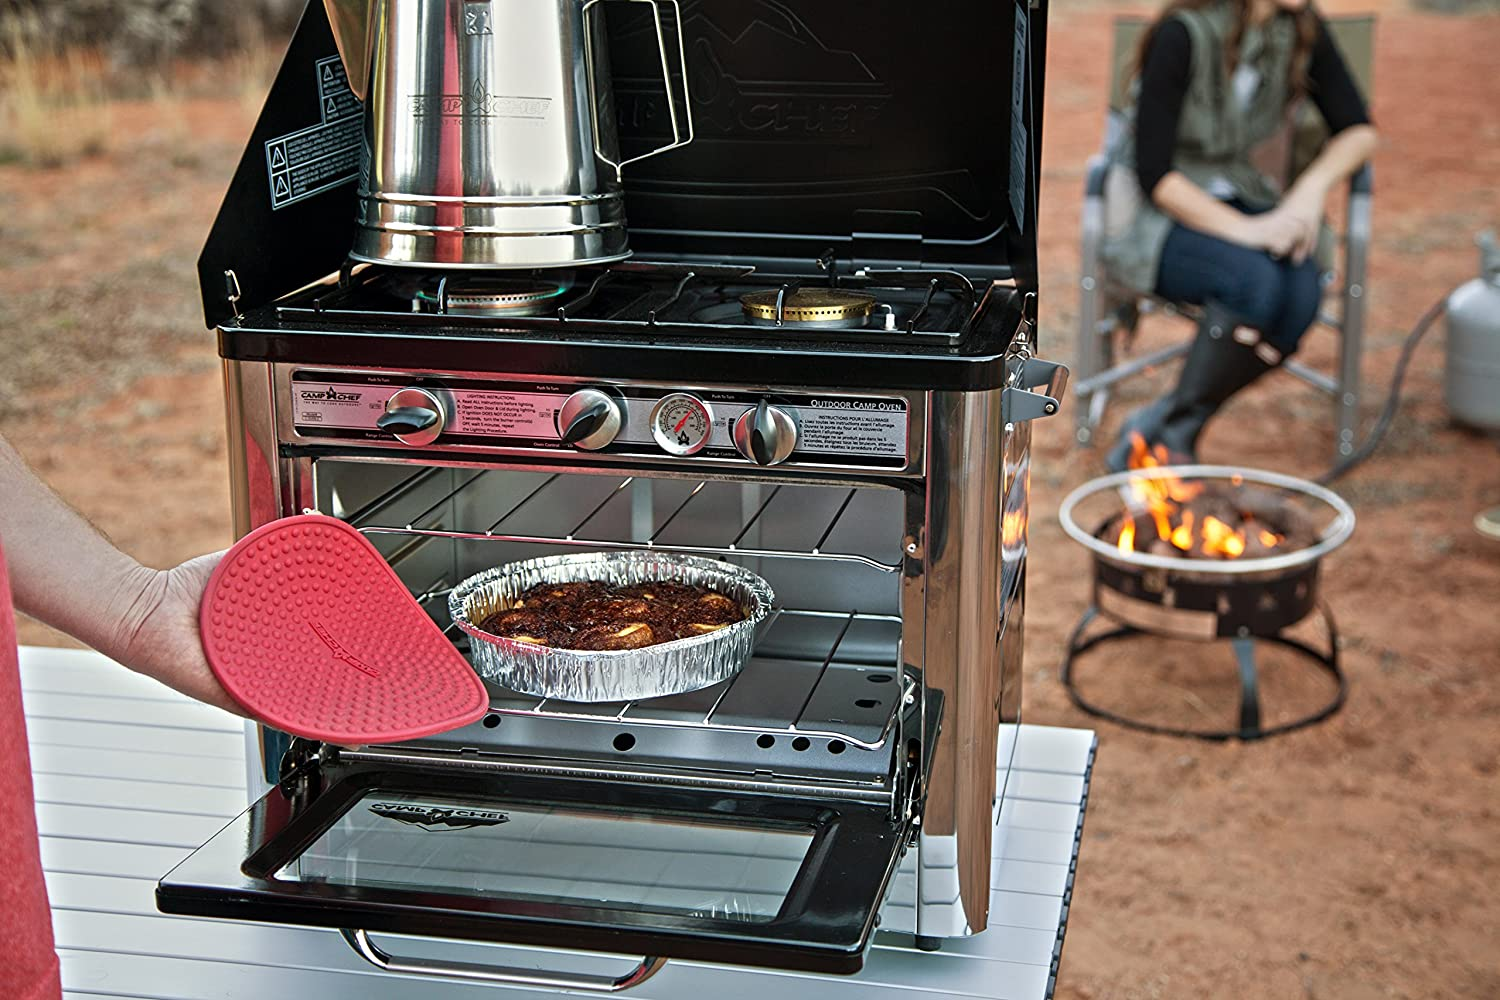 Amazon.com : Camp Chef Camping Outdoor Oven with 2 Burner Camping ...